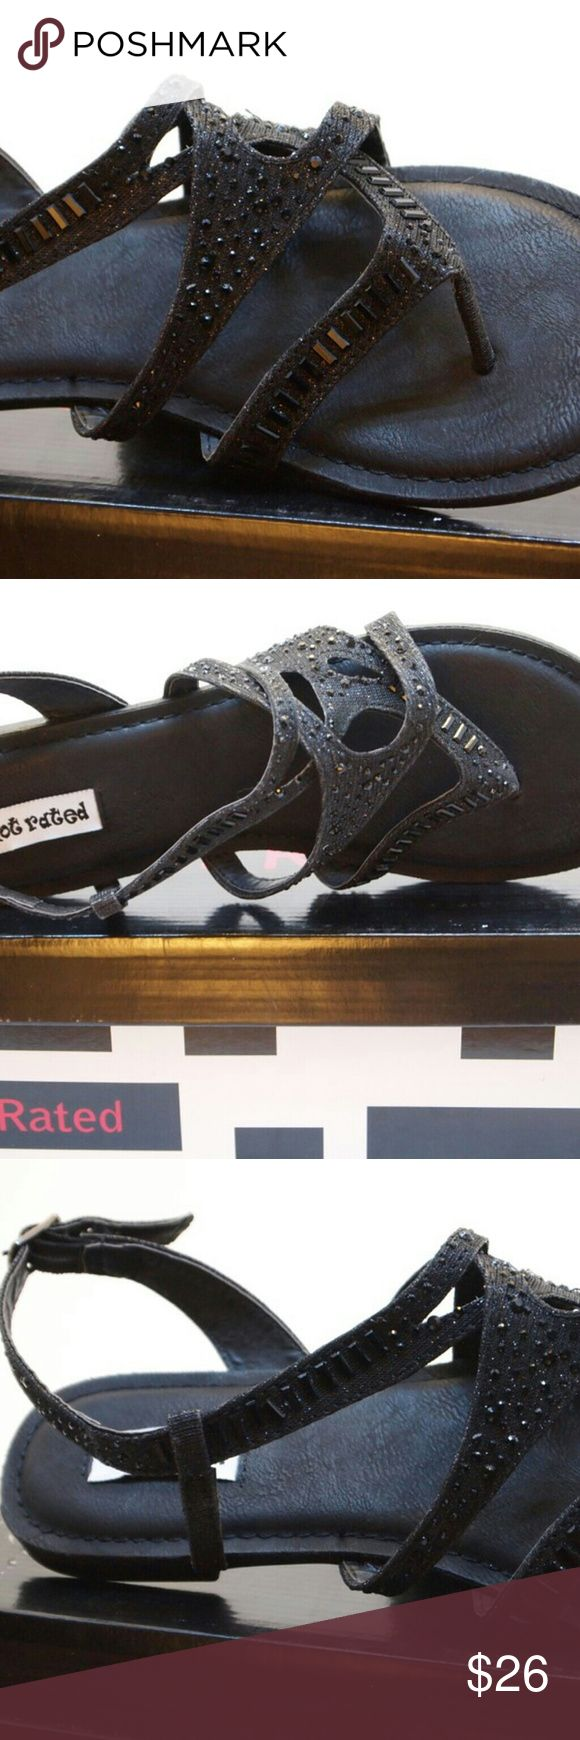 Women's sandals shoes black spring summer shoe. New in box. Super cute! Handling time is 3 to 5 days. Not Rated Shoes Sandals